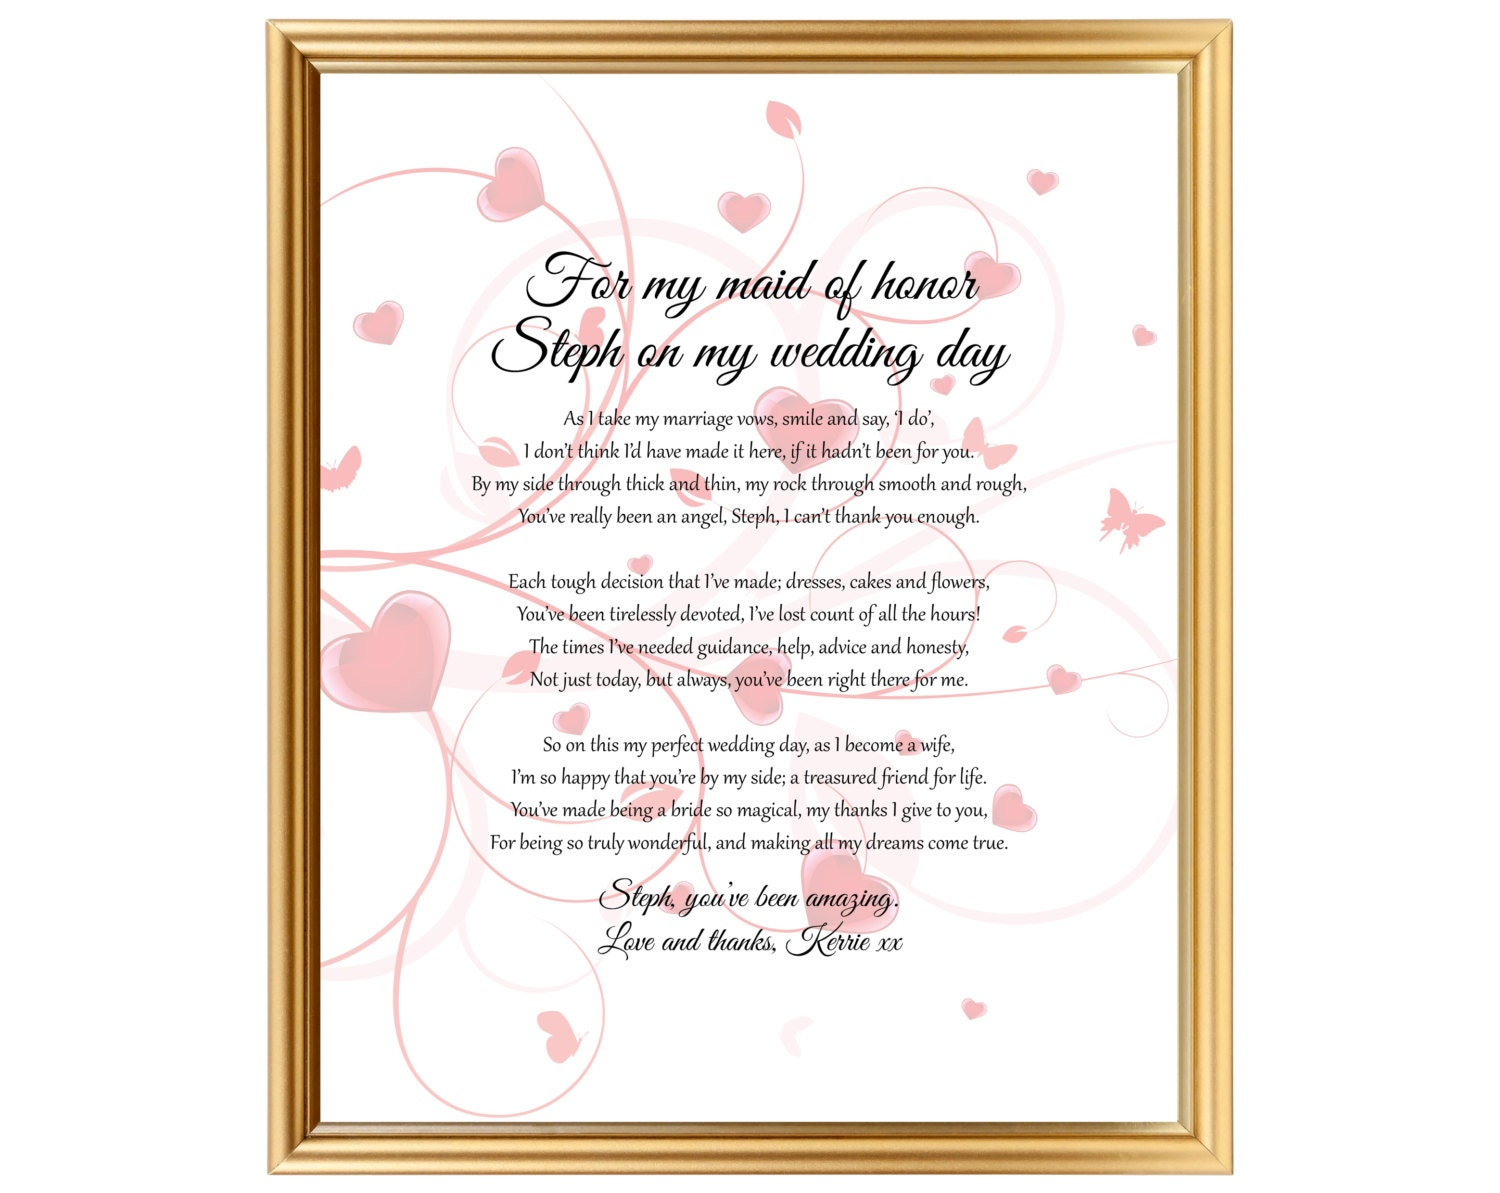 Wedding Gift For Bride From Best Friend : Maid of Honor Bride gift for her best friend On my wedding